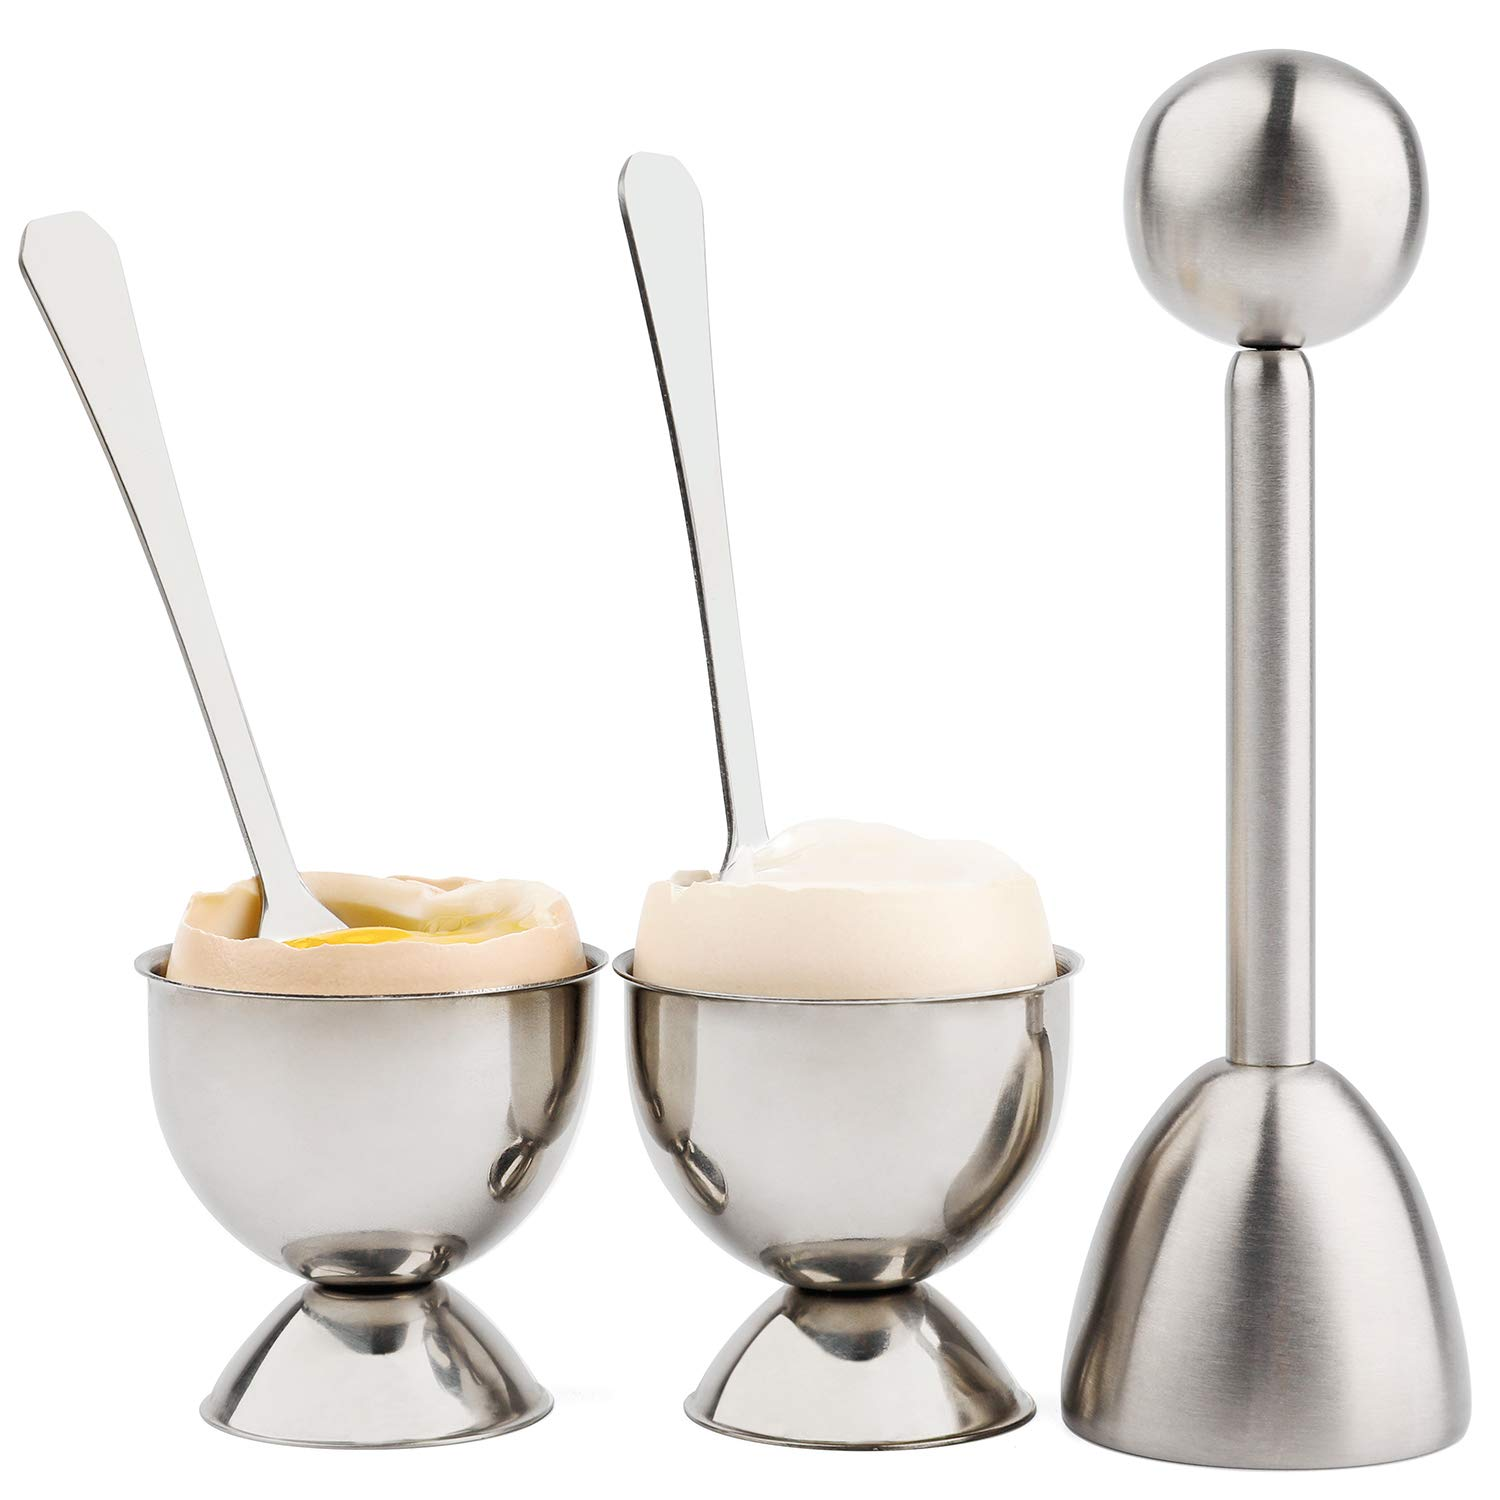 Soft Hard Boiled Egg Cutter Topper Set Egg Cracker with Include 2 Cup 2 Spoon 1 Topper Cutter Shell Separator Remover Stainless Steel Kitchen Tool by YellRin